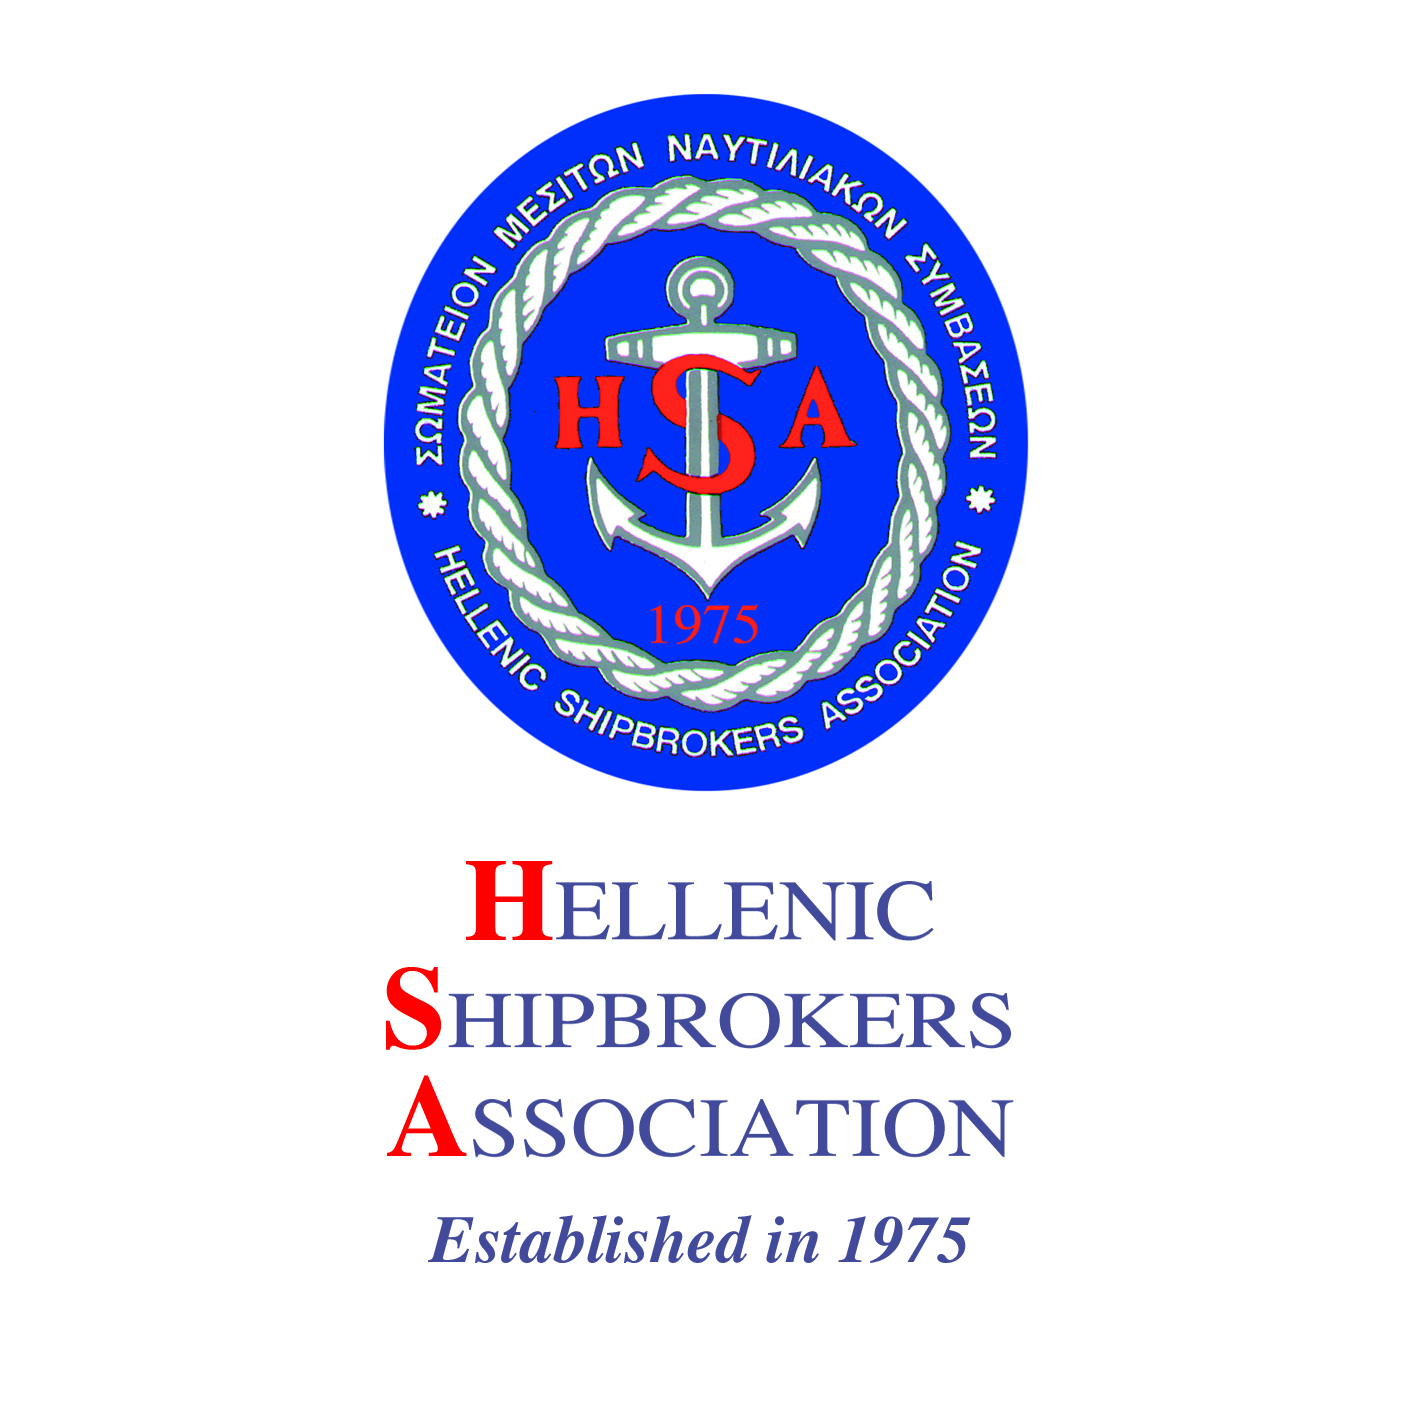 Hellenic Shipbrokers Association (HSA) Shipbroker Shipping